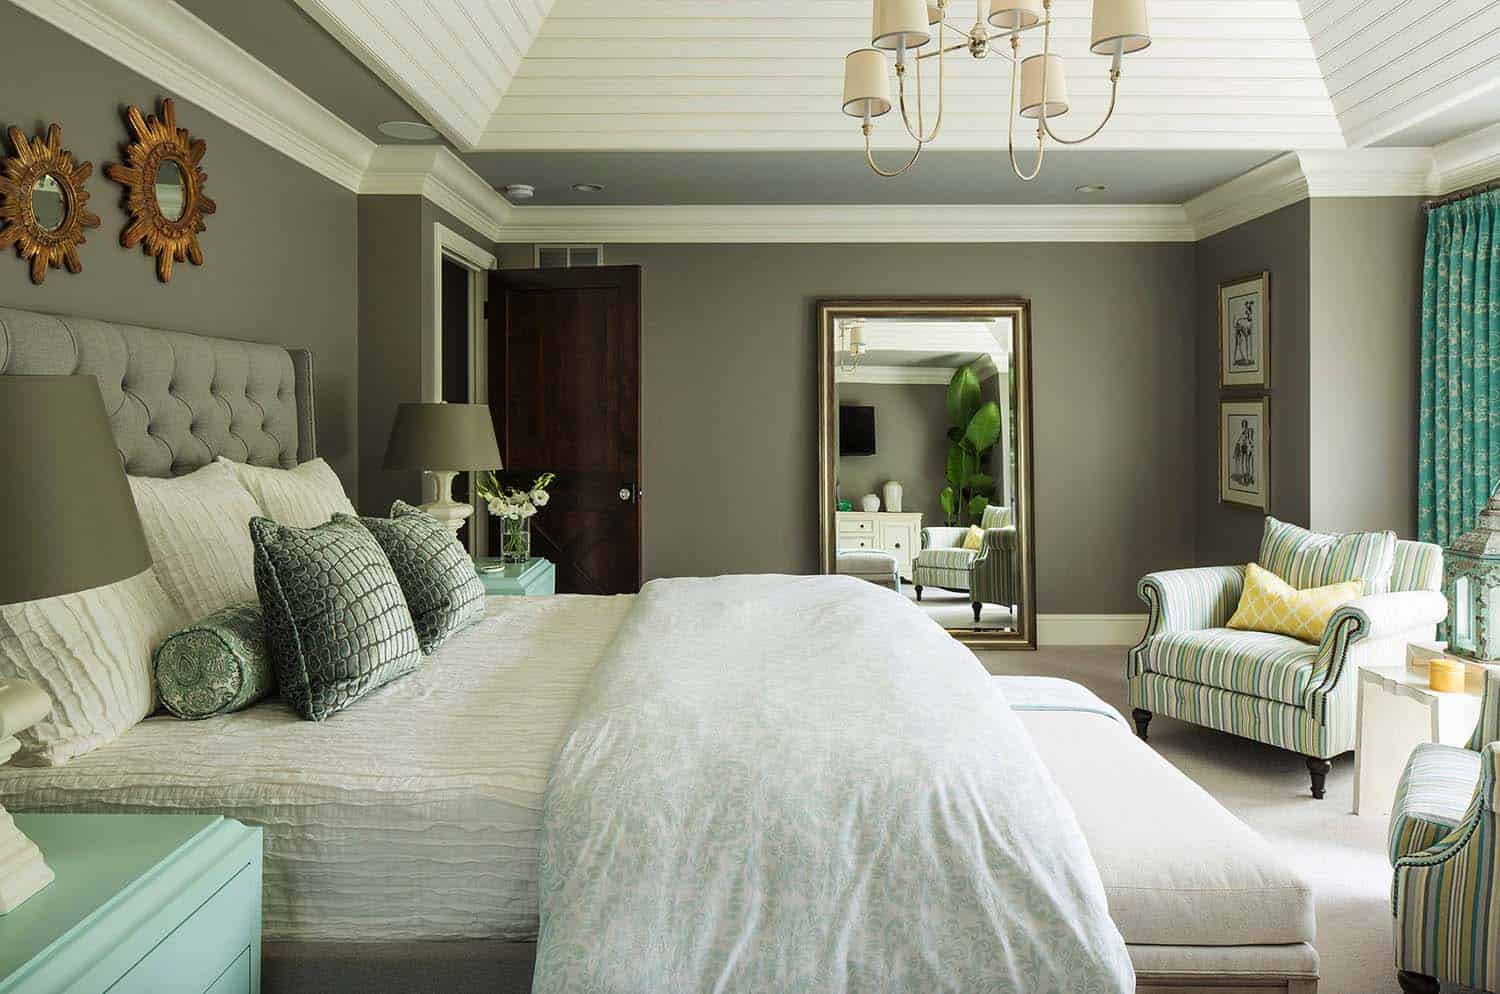 25 Absolutely stunning master bedroom color scheme ideas on Best Master Bedroom Designs  id=78055